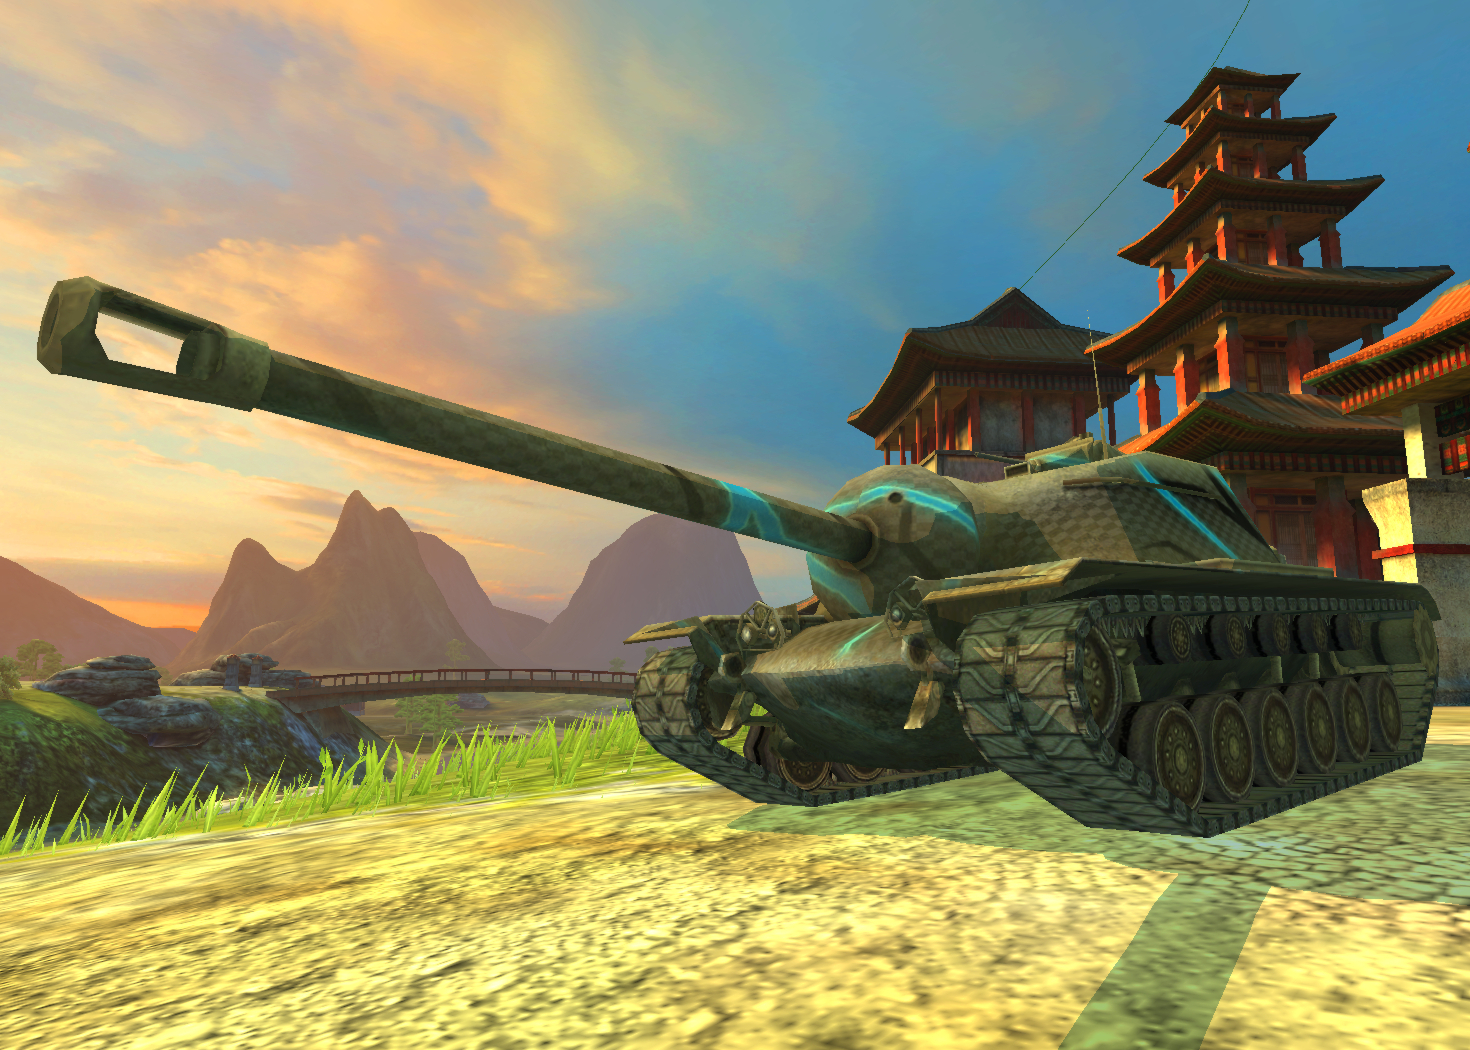 World of Tanks Blitz Windows, Mac, iOS, Android game - Mod DB